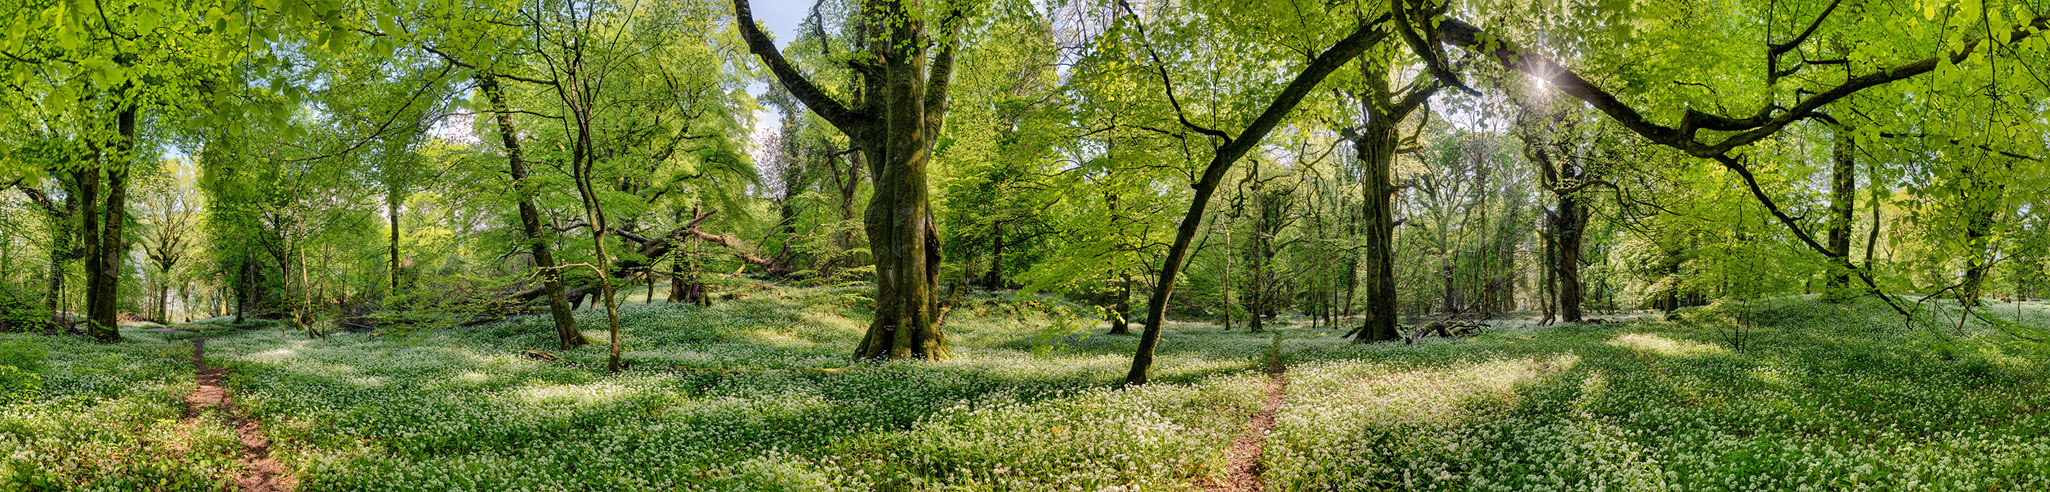 Ross island Forest wild garlic photo forest panoramic